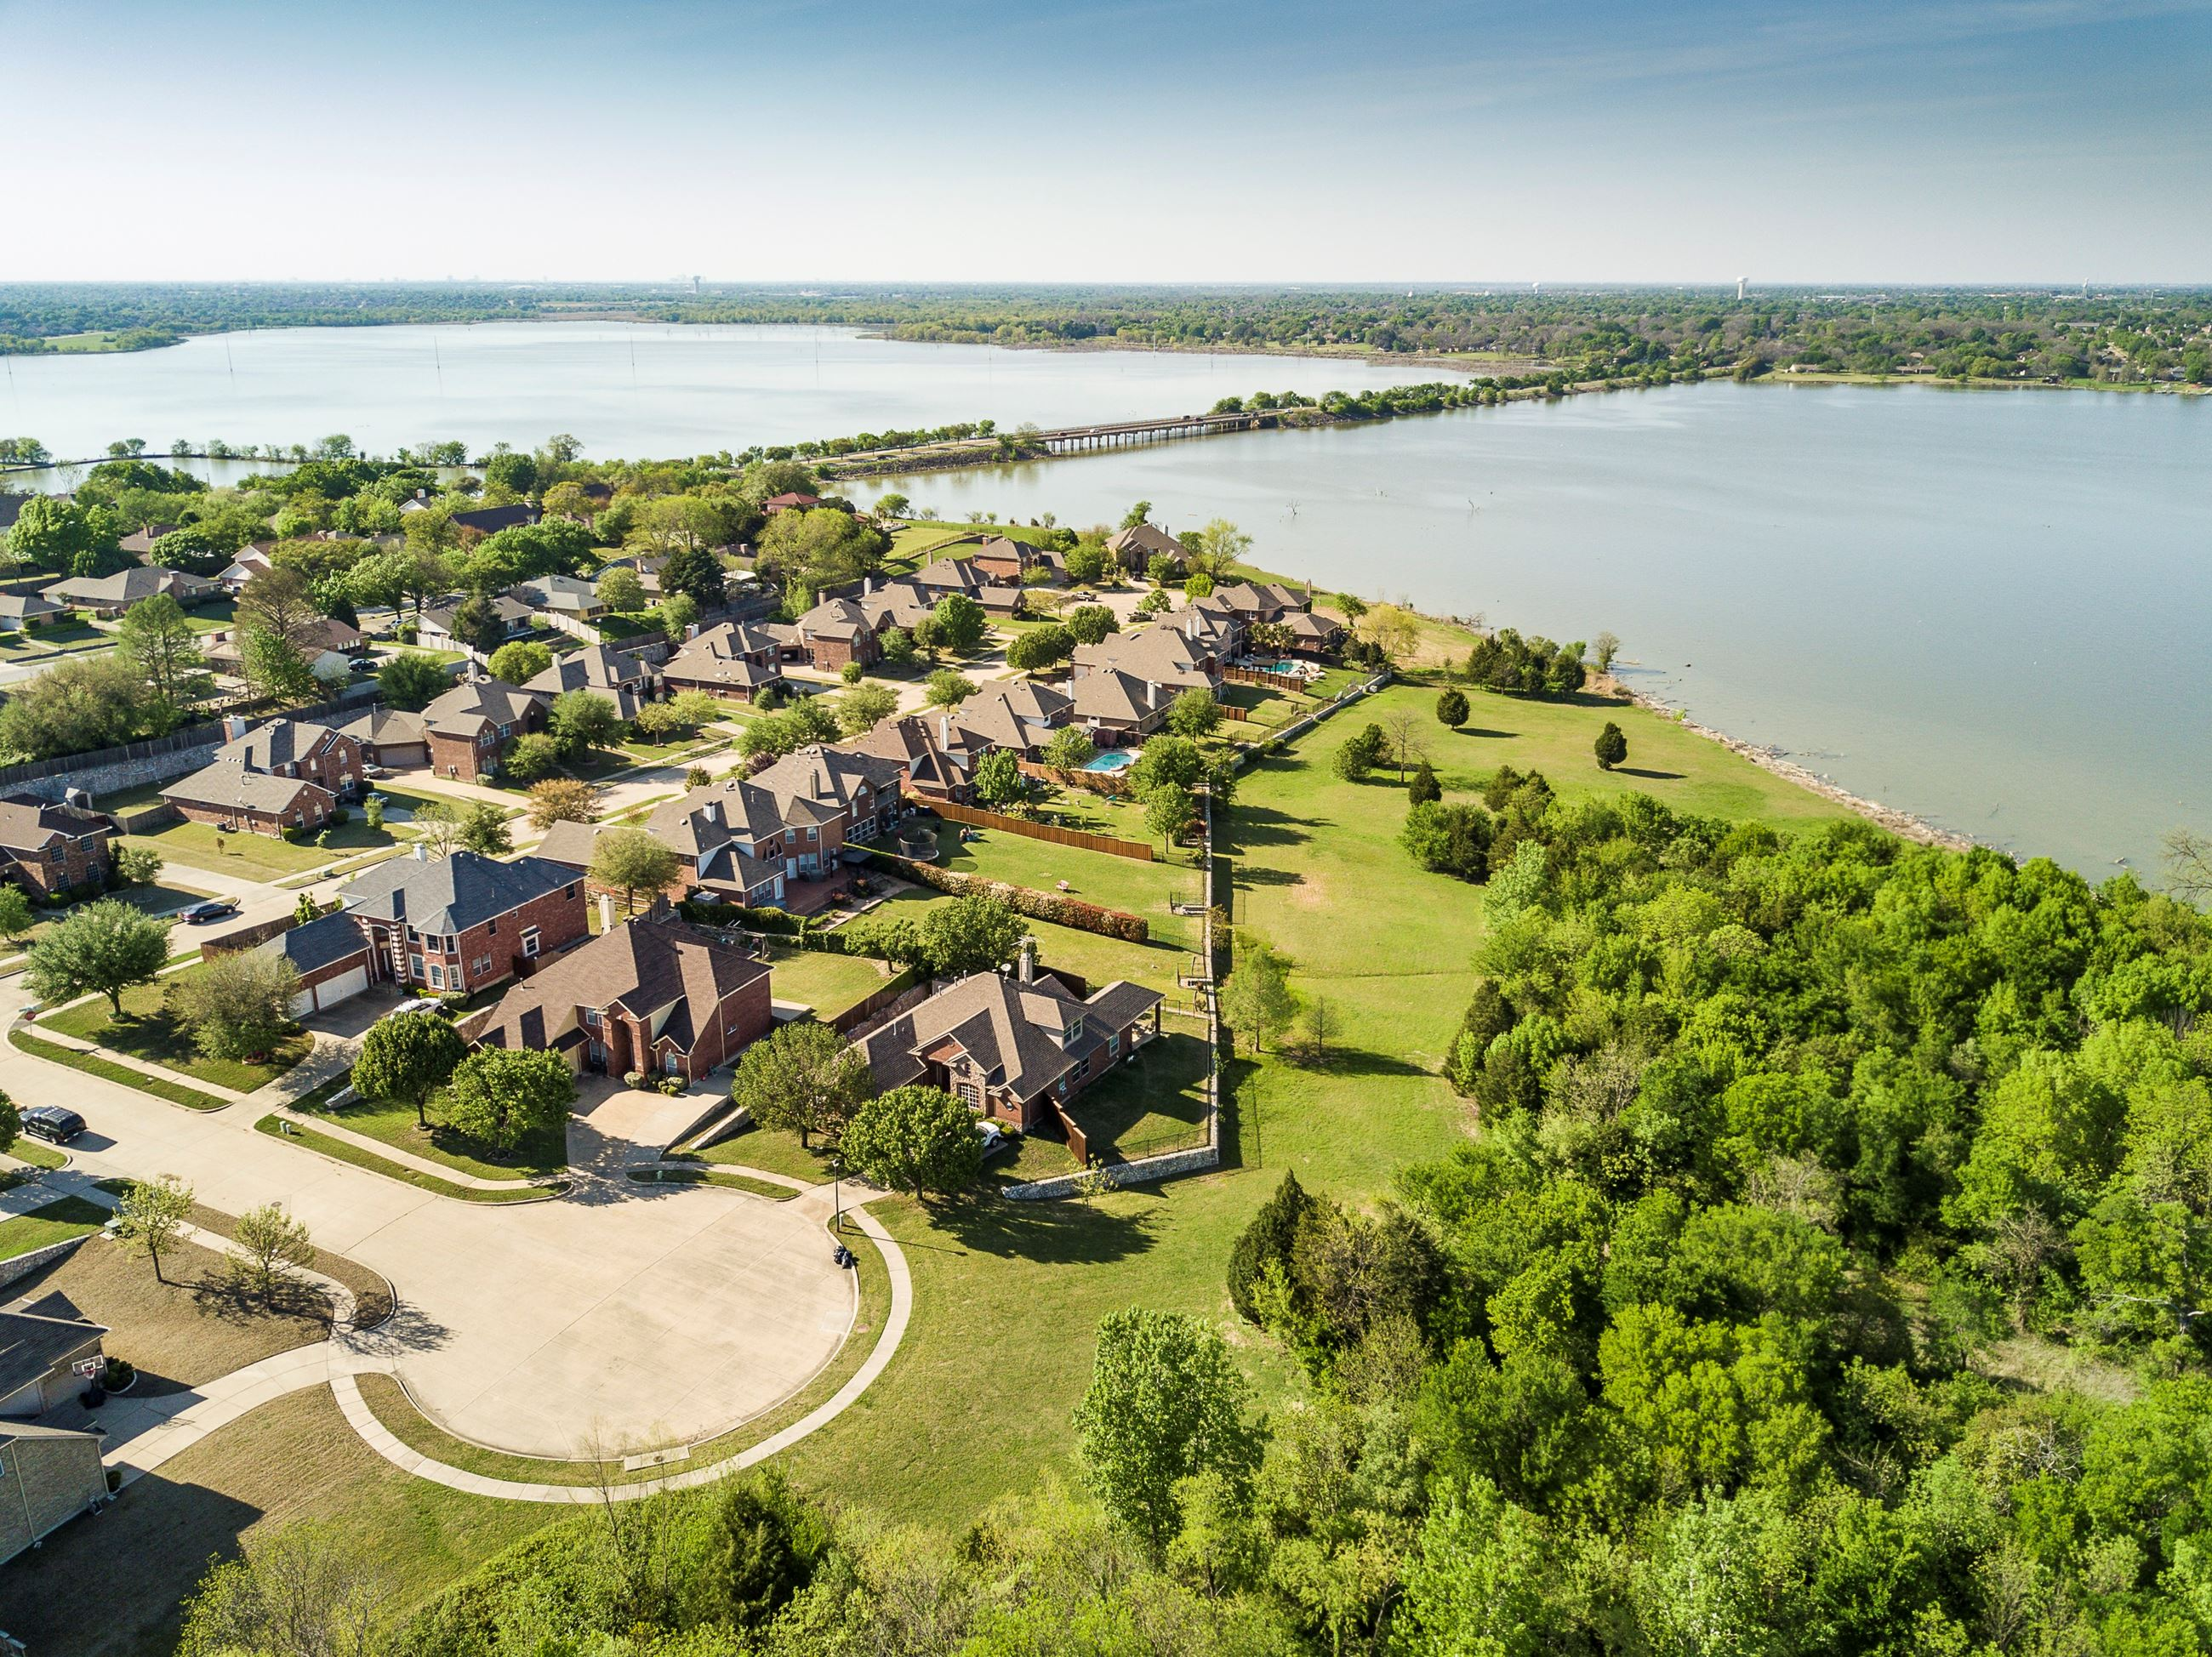 The Shores of Wellington neighborhood along the shoreline of Lake Ray Hubbard in Garland, Texas.